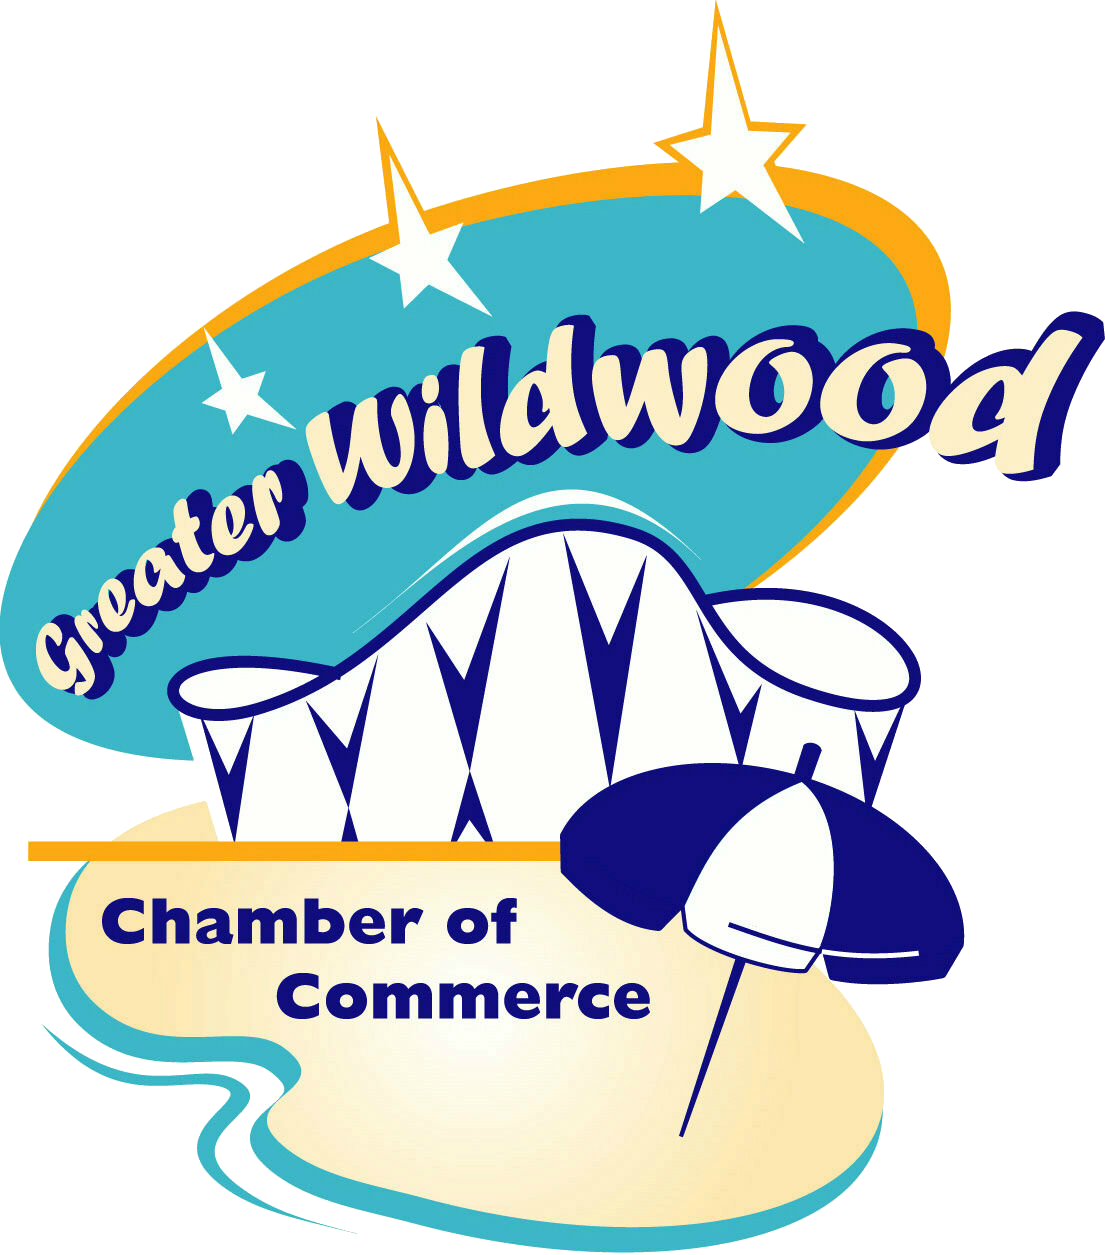 Greater Wildwood Chamber of Commerce